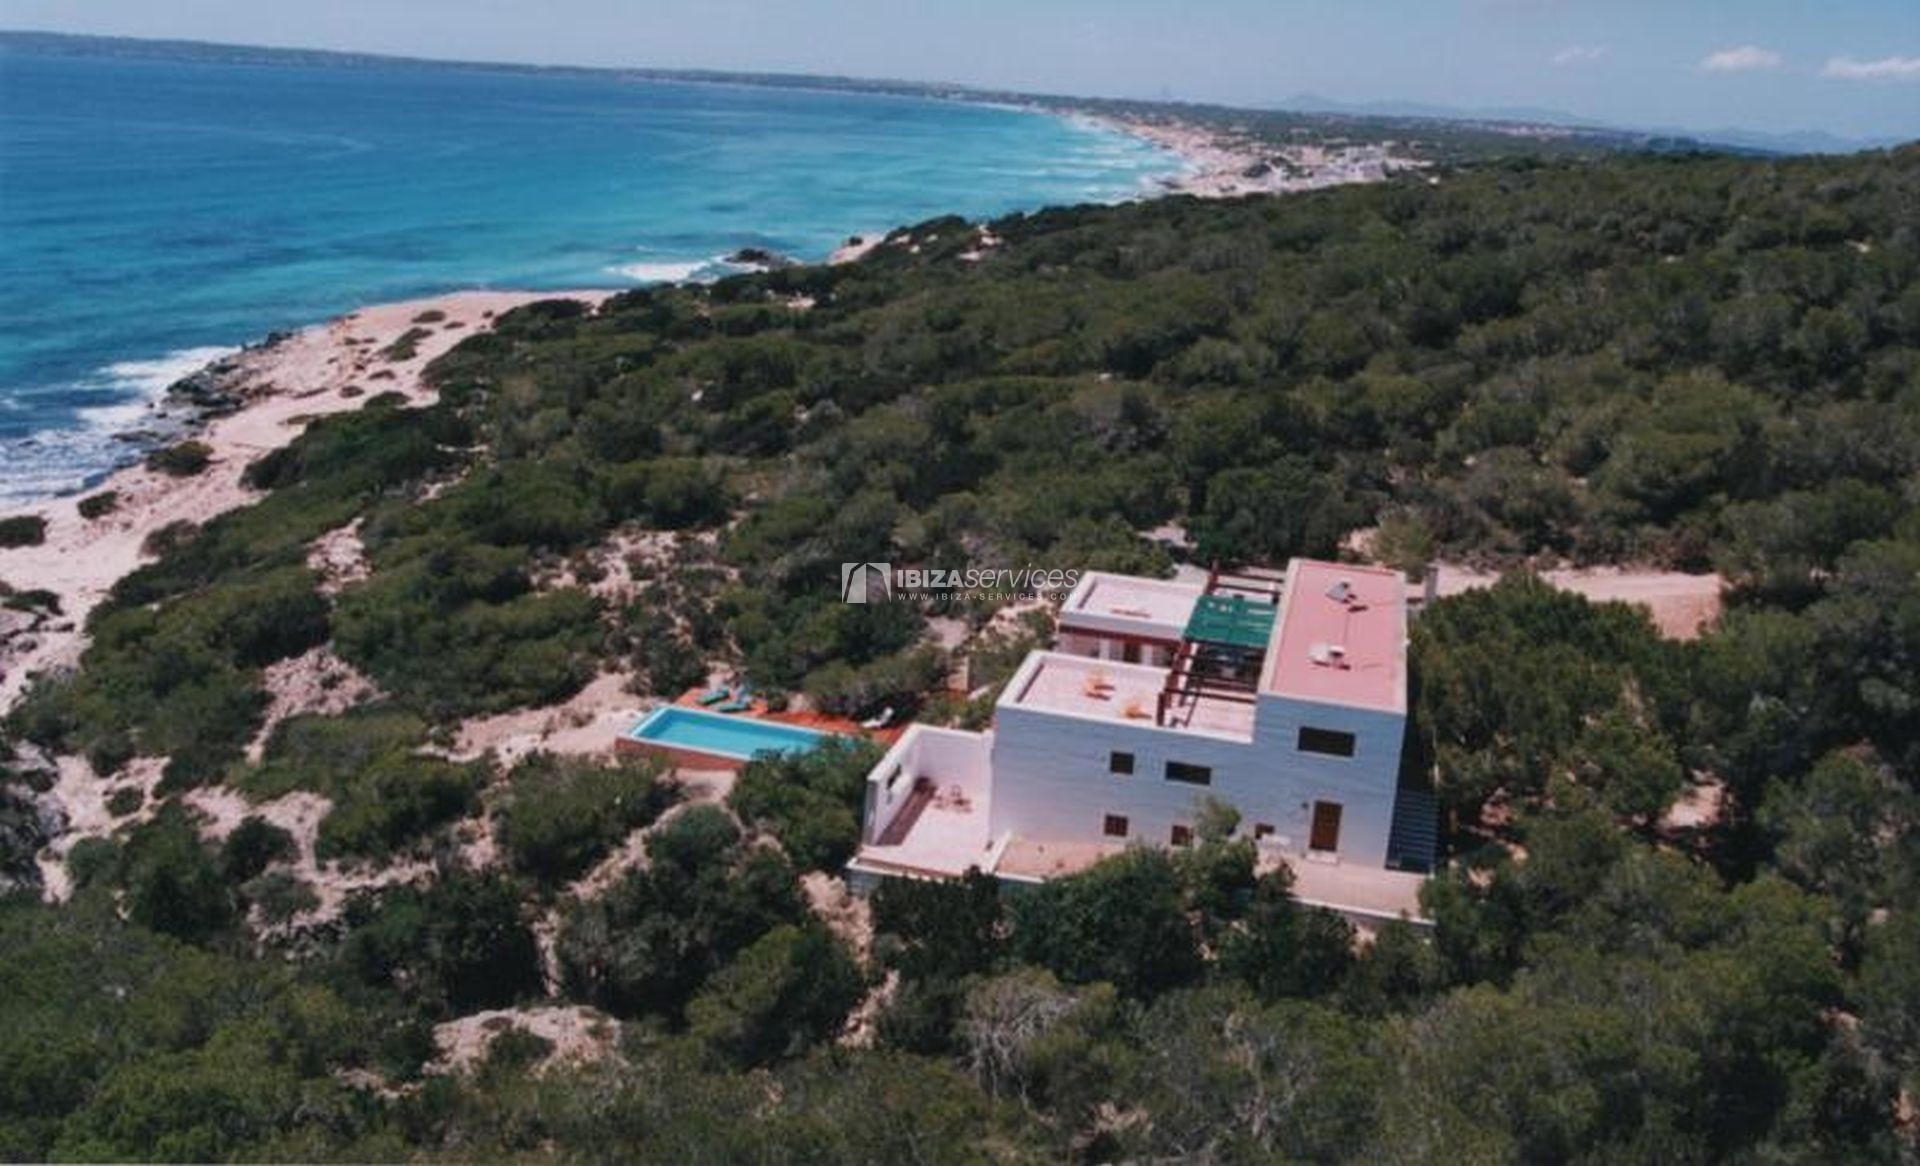 Villa for sale Formentera with amazing sea views perspectiva 49